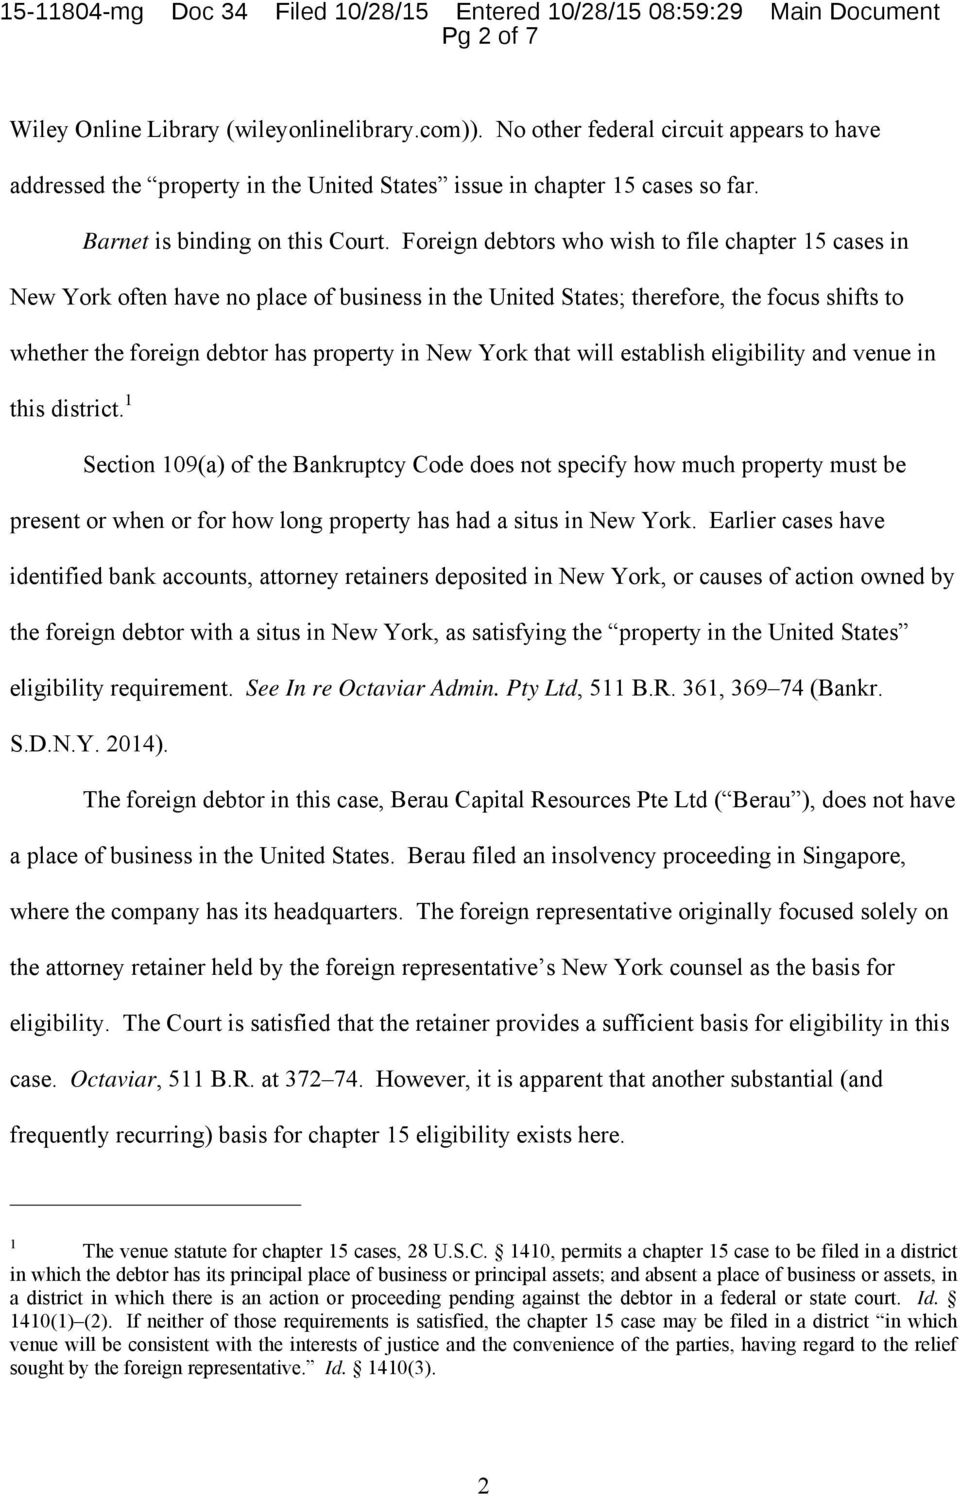 Foreign debtors who wish to file chapter 15 cases in New York often have no place of business in the United States; therefore, the focus shifts to whether the foreign debtor has property in New York